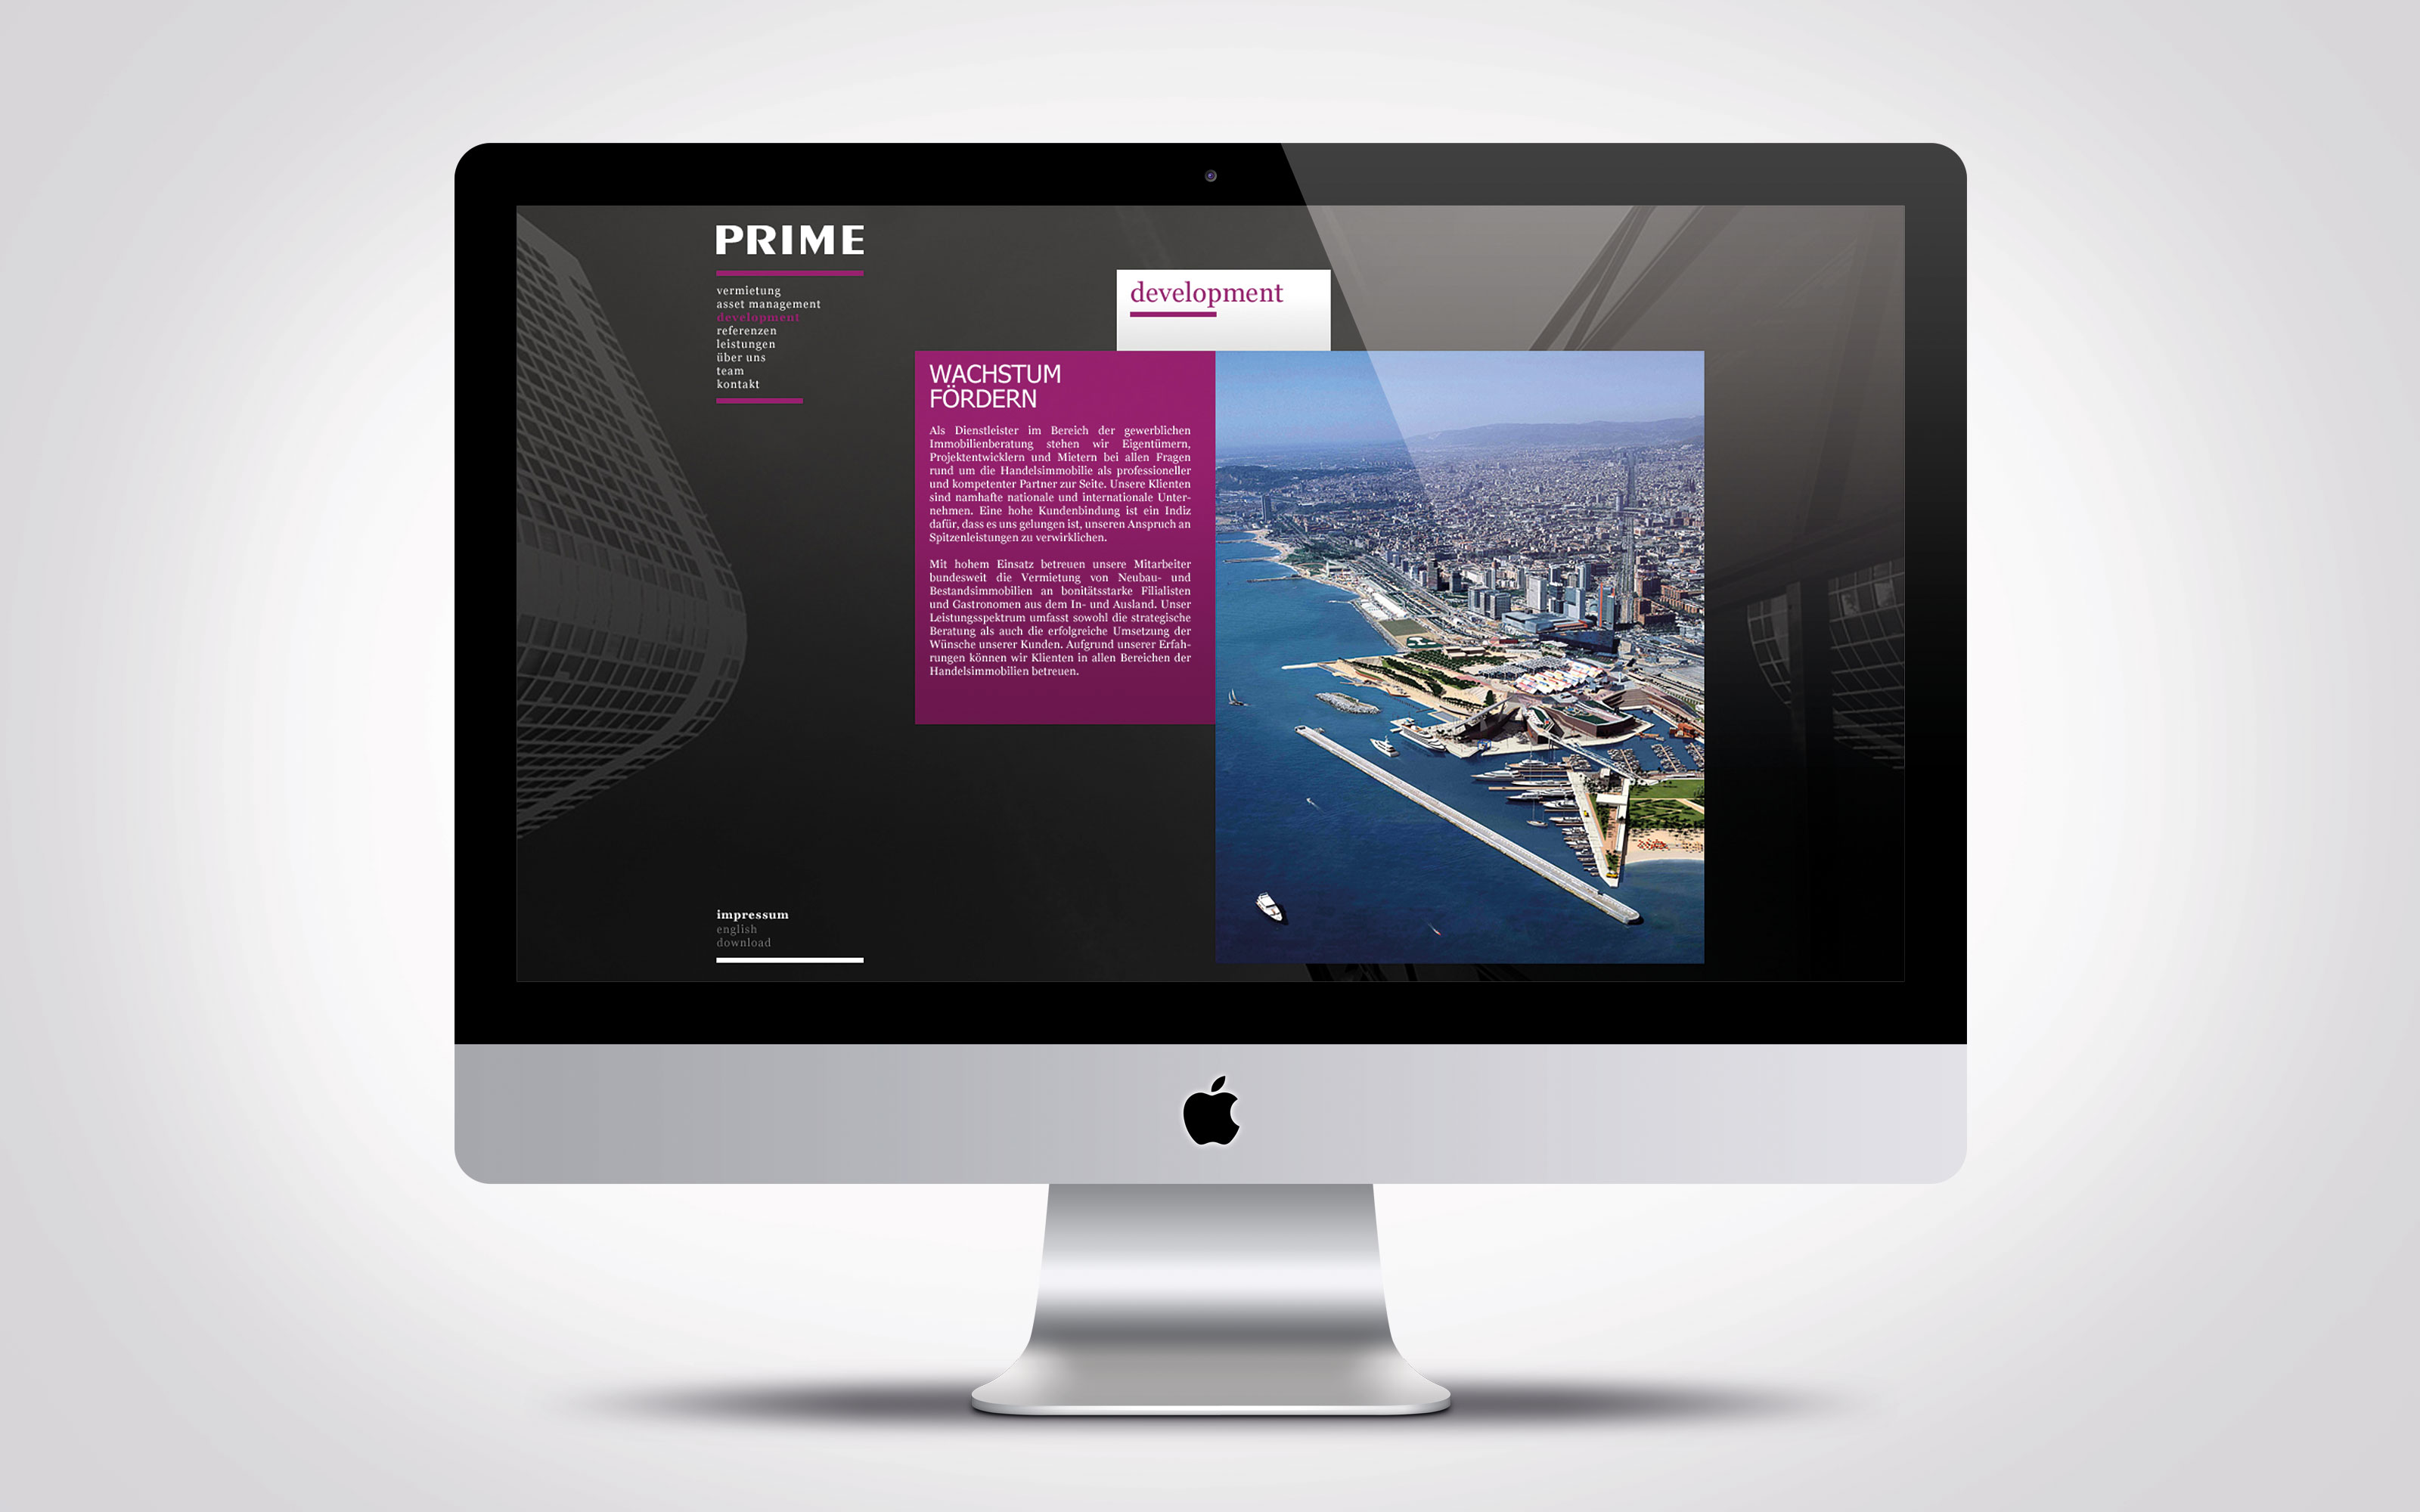 maniana-design_webseite_prime-real-estate_03